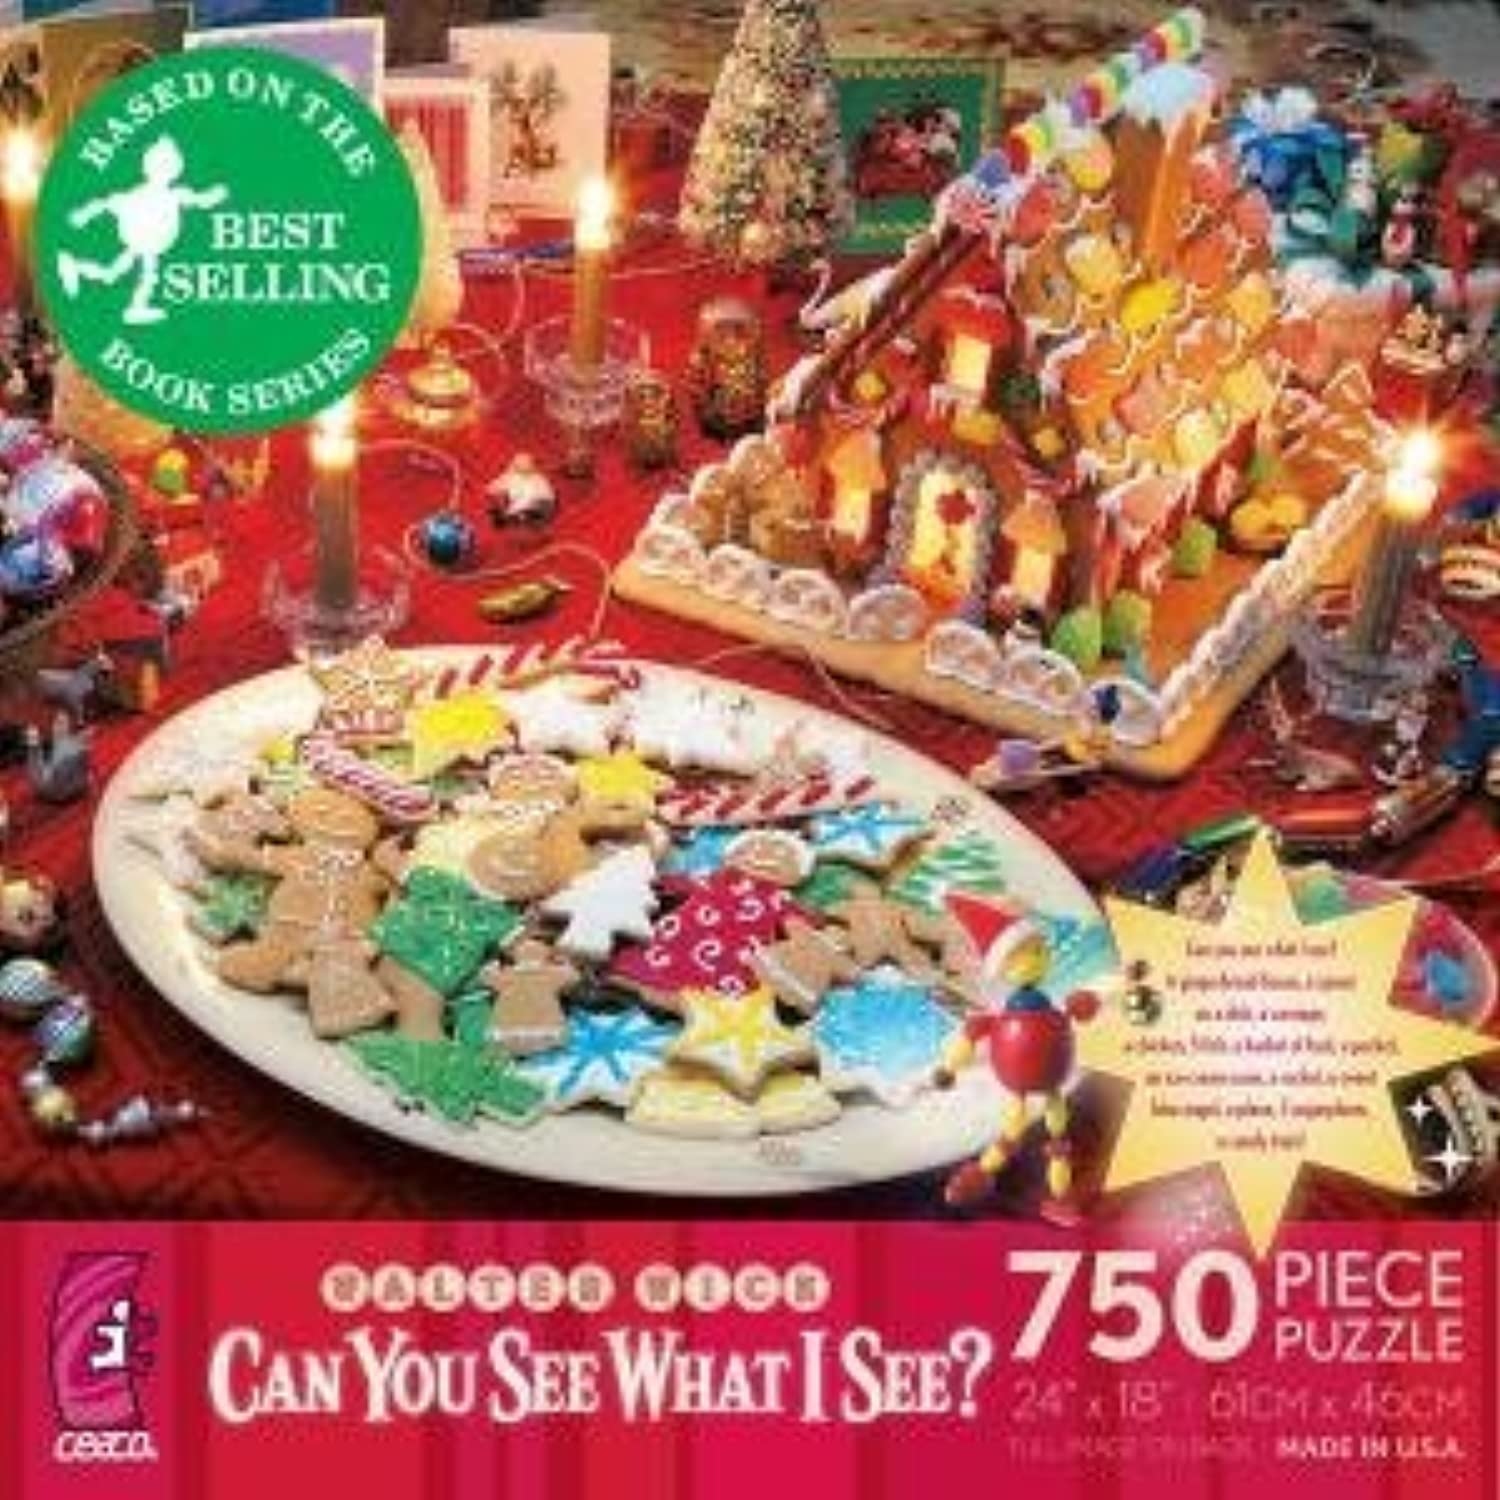 Walter Wick Can You See What I See 750 Piece Puzzle by Ceaco